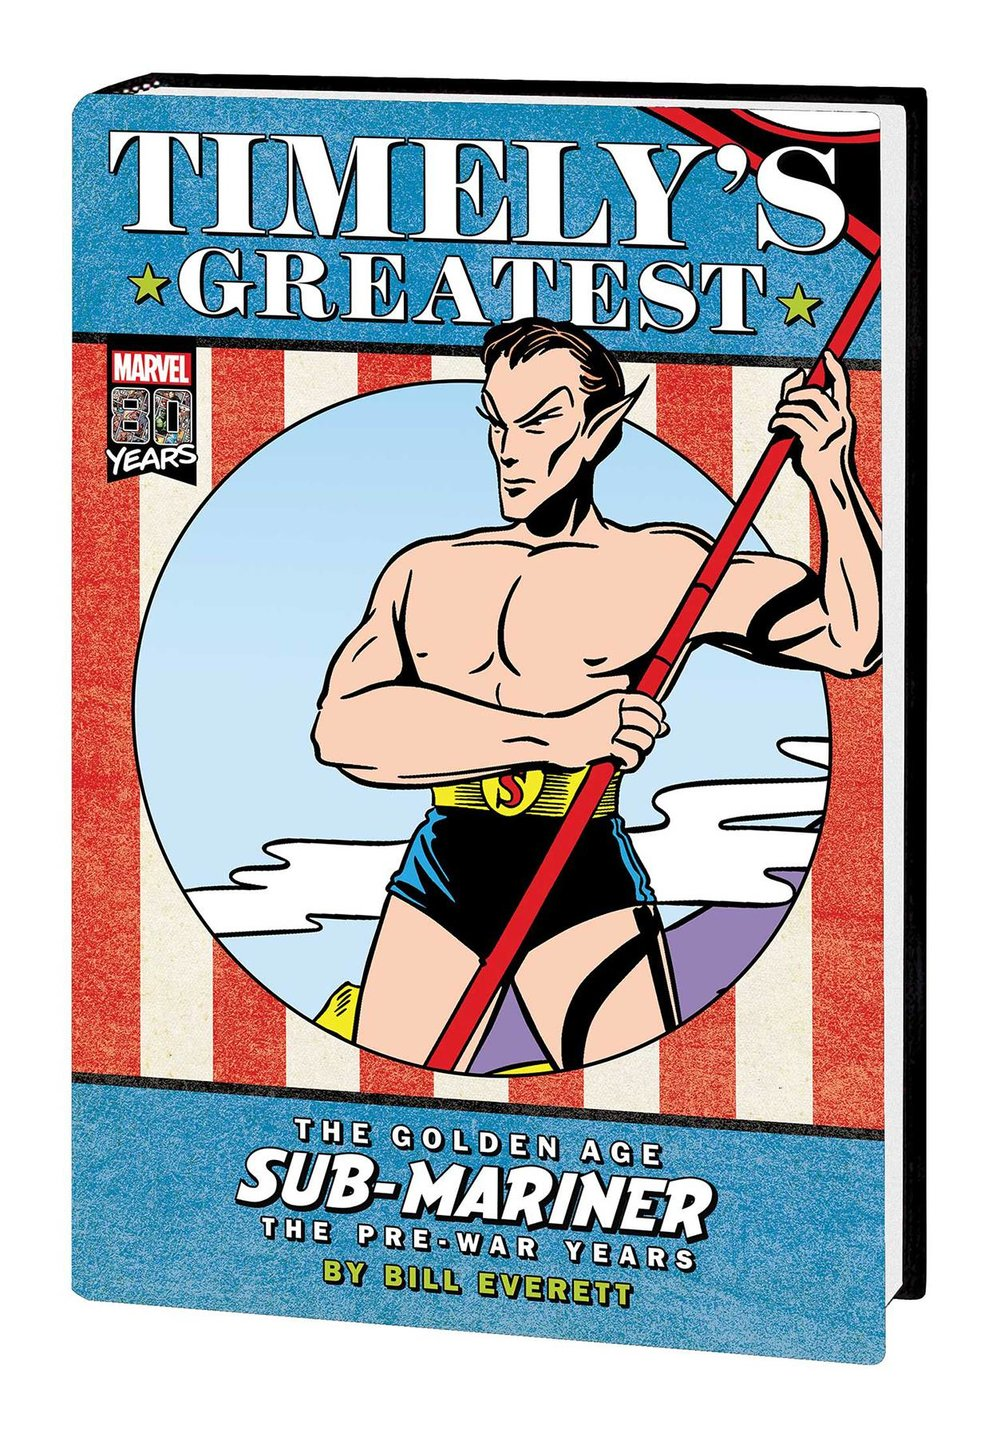 TIMELYS GREATEST GOLDEN AGE SUB-MARINER BY EVERETT HC DM VAR.jpg